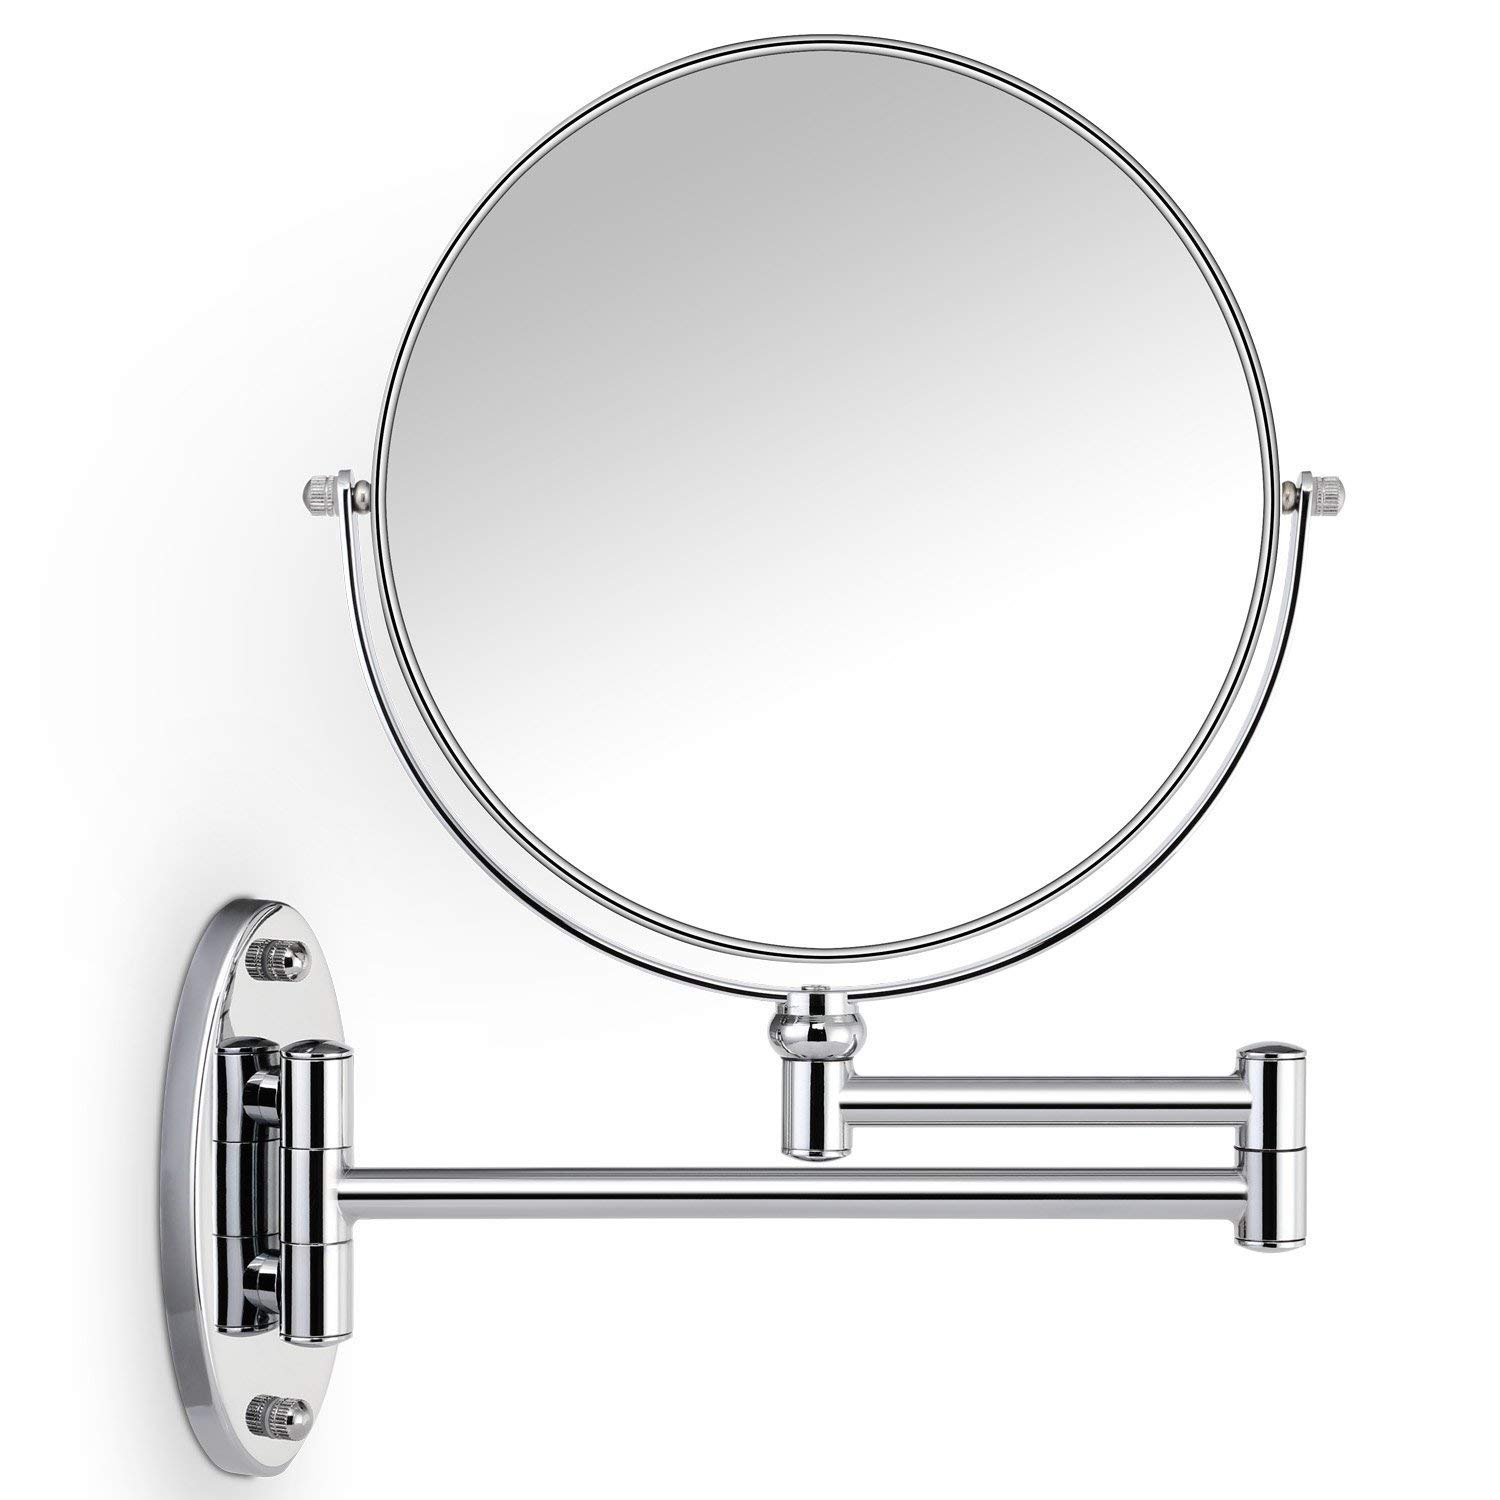 Miusco 10X Magnifying Two Sided Wall Mount Makeup Mirror, 8 inch, Round, Chrome